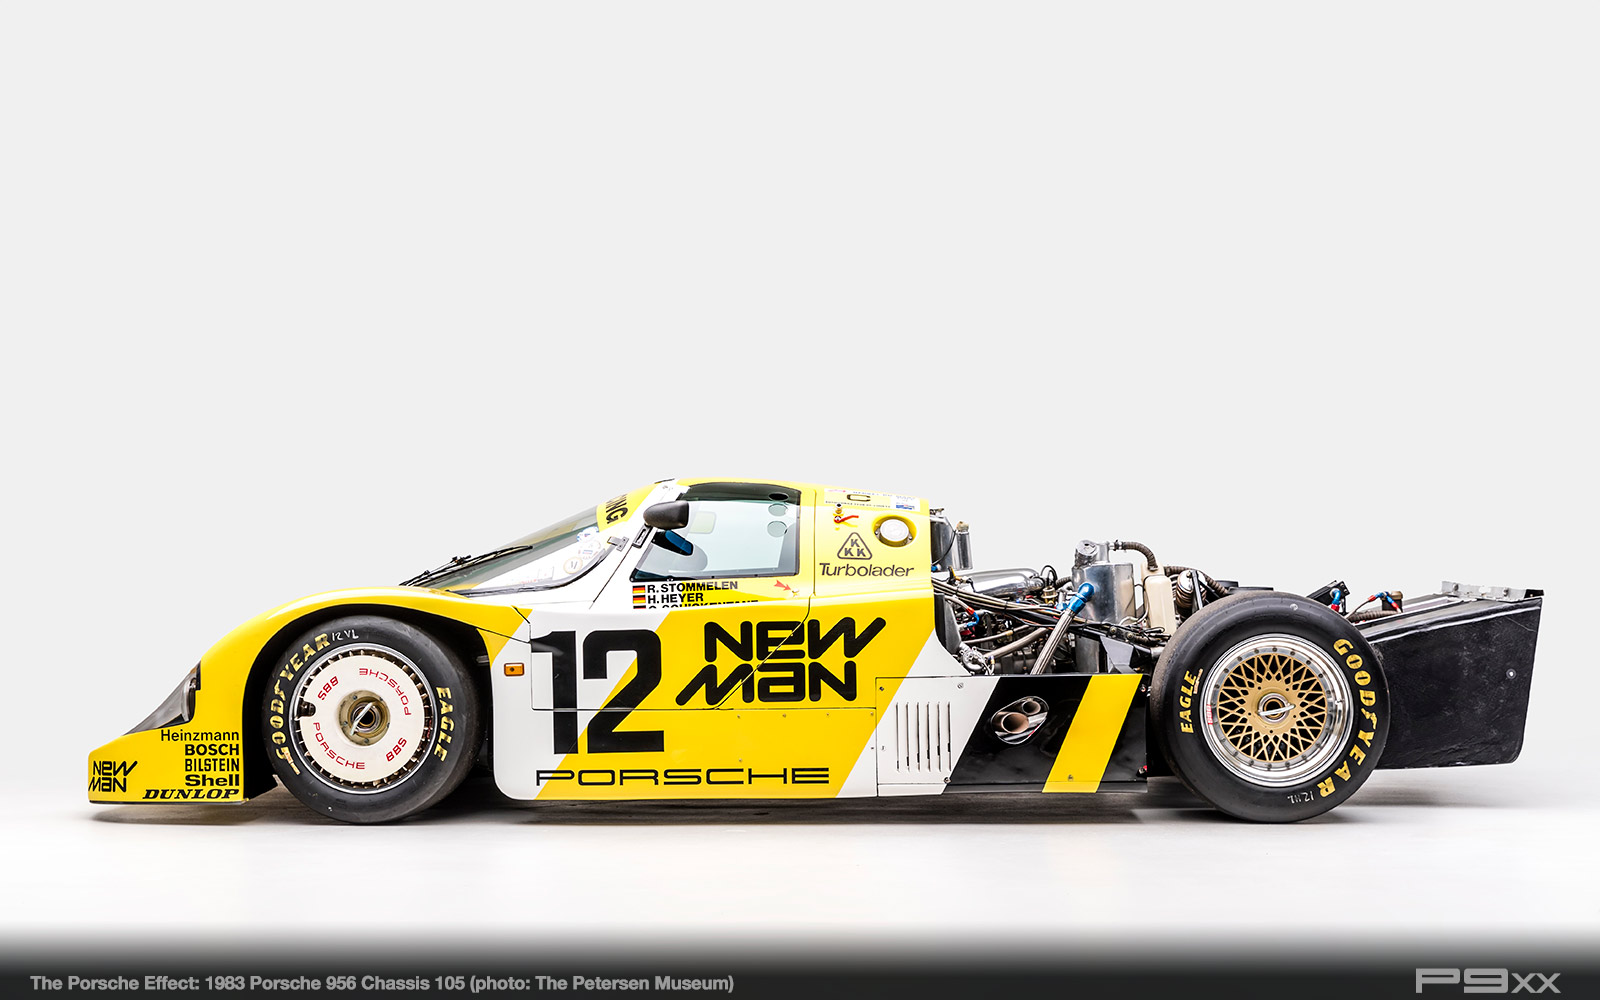 1983-956-Chassis-105-Petersen-Automotive-Museum-The-Porsche-Effect-425